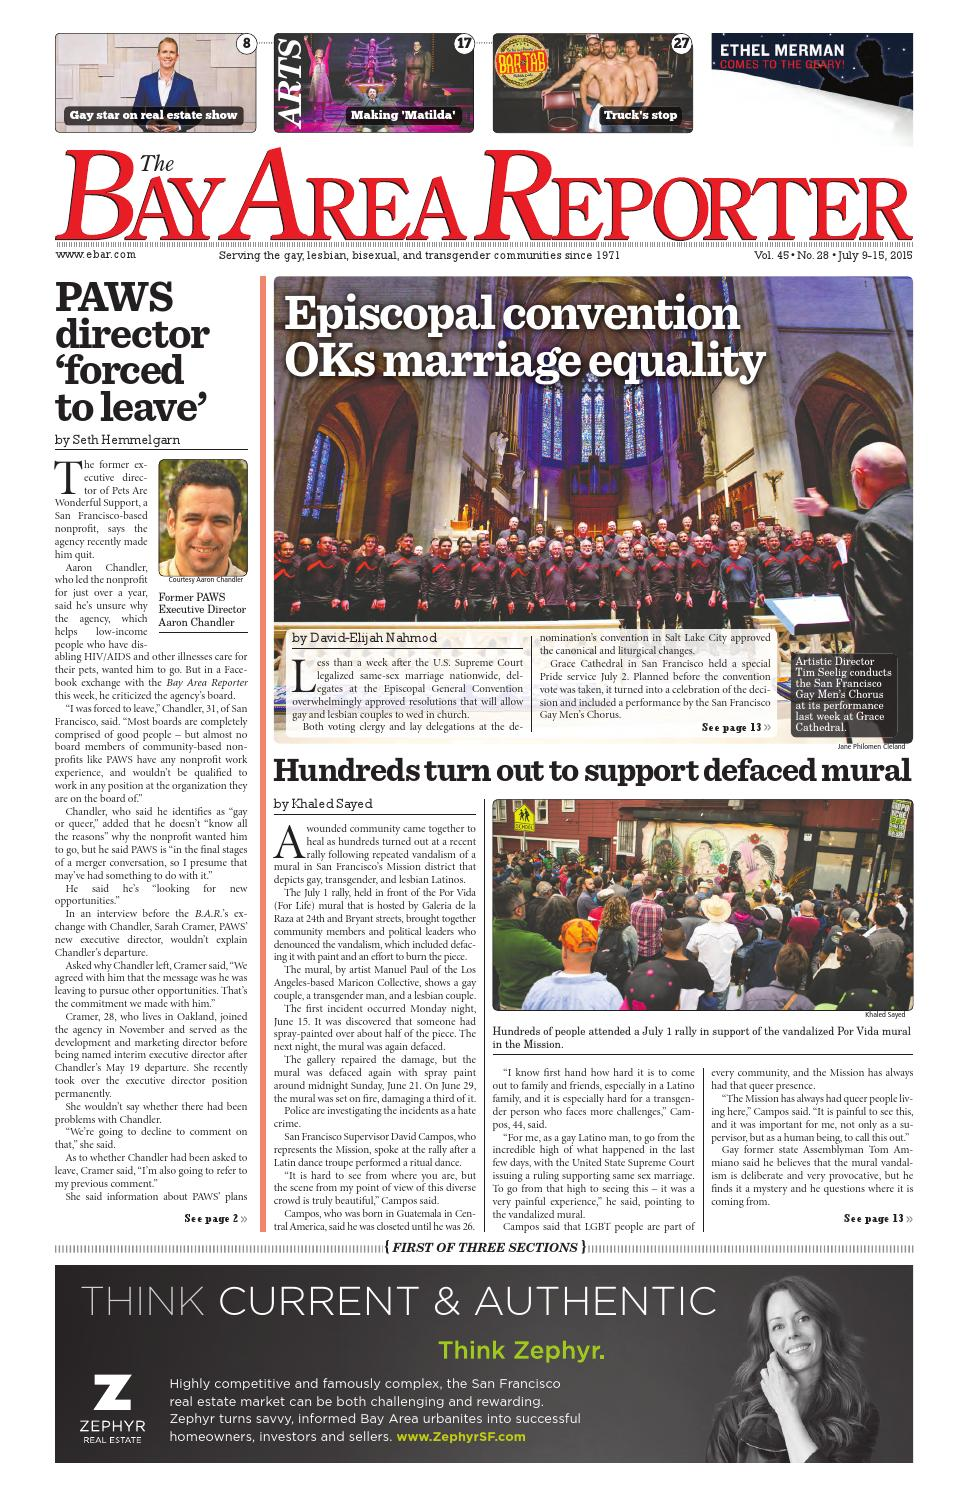 July 9, 2015 Edition of the Bay Area Reporter